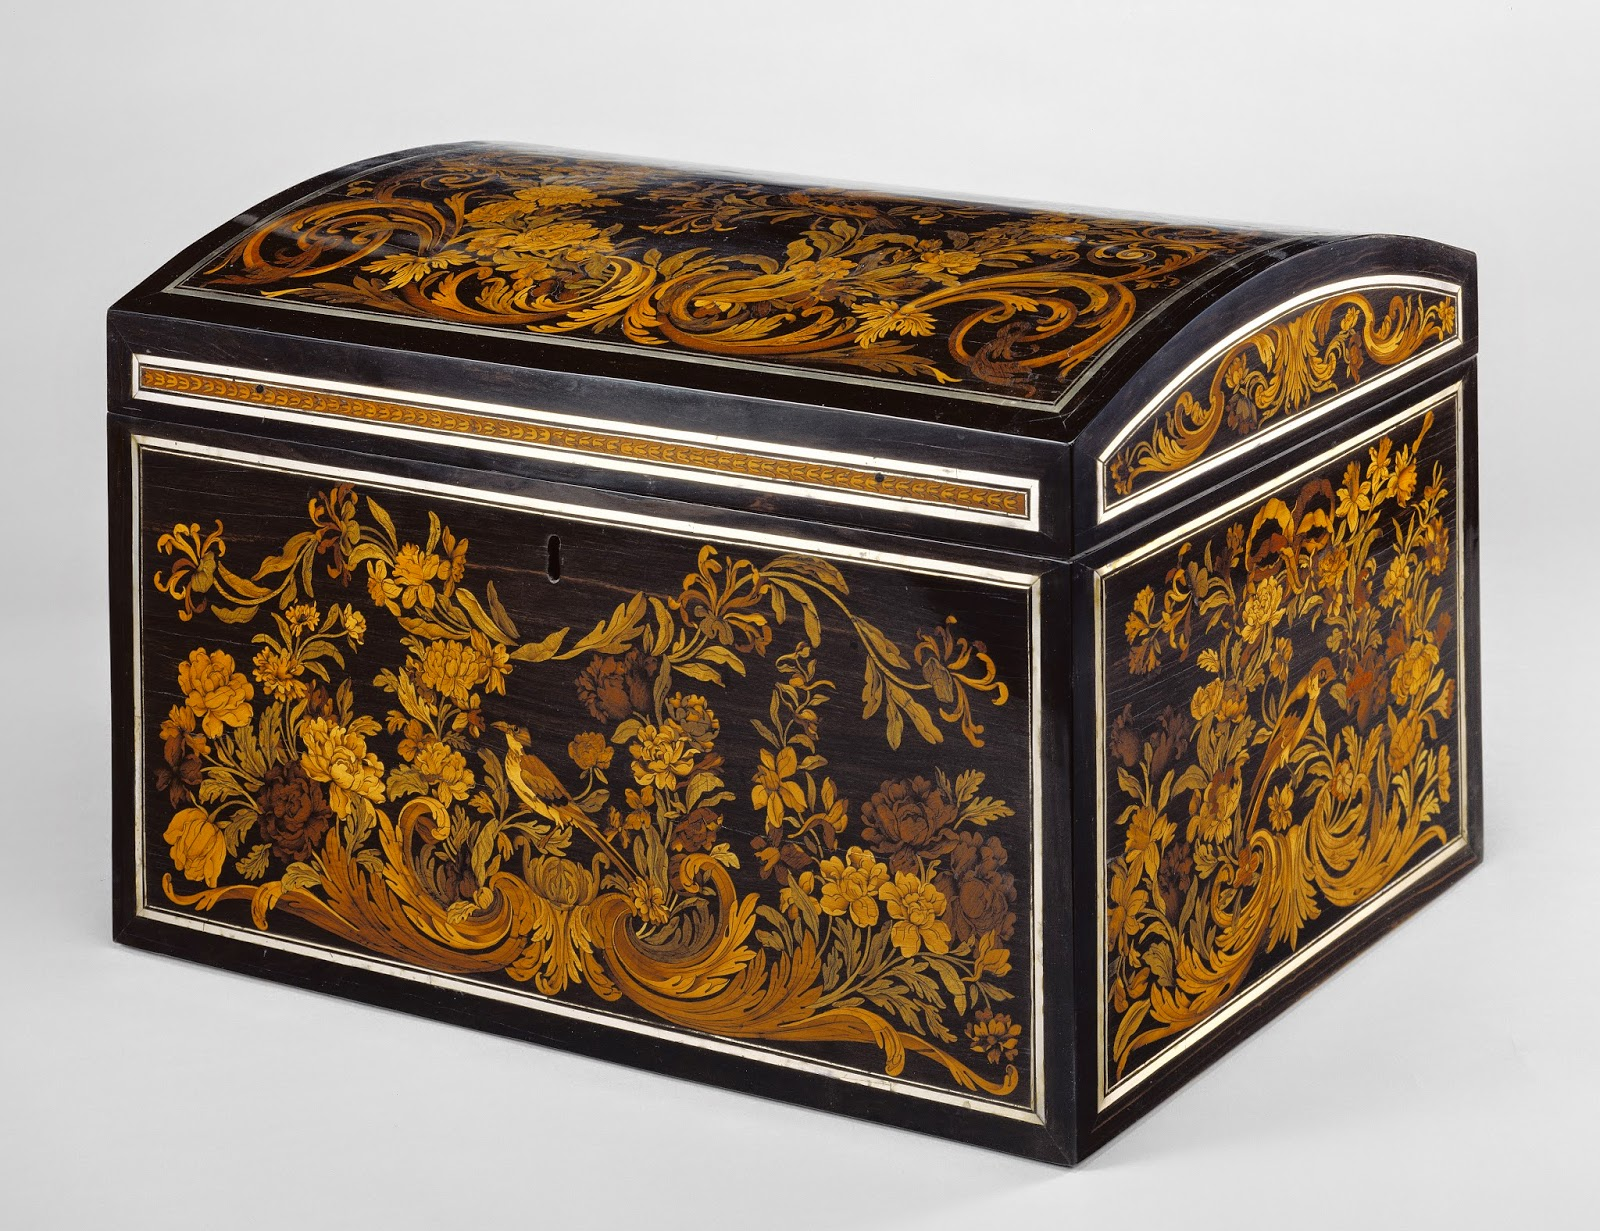 Box, Attributed to André-Charles Boulle and perhaps Gobelins Manufactory (French, founded 1662 - present), about 1675 - 1680, White oak veneered with amaranth, barberry, bloodwood, natural and stained boxwood, cedar, cherry, holly, green-stained hornbeam, mahogany, padouk, natural and stained maple, walnut, yew, and an unidentified wood; horn and pewter; fittings of steel